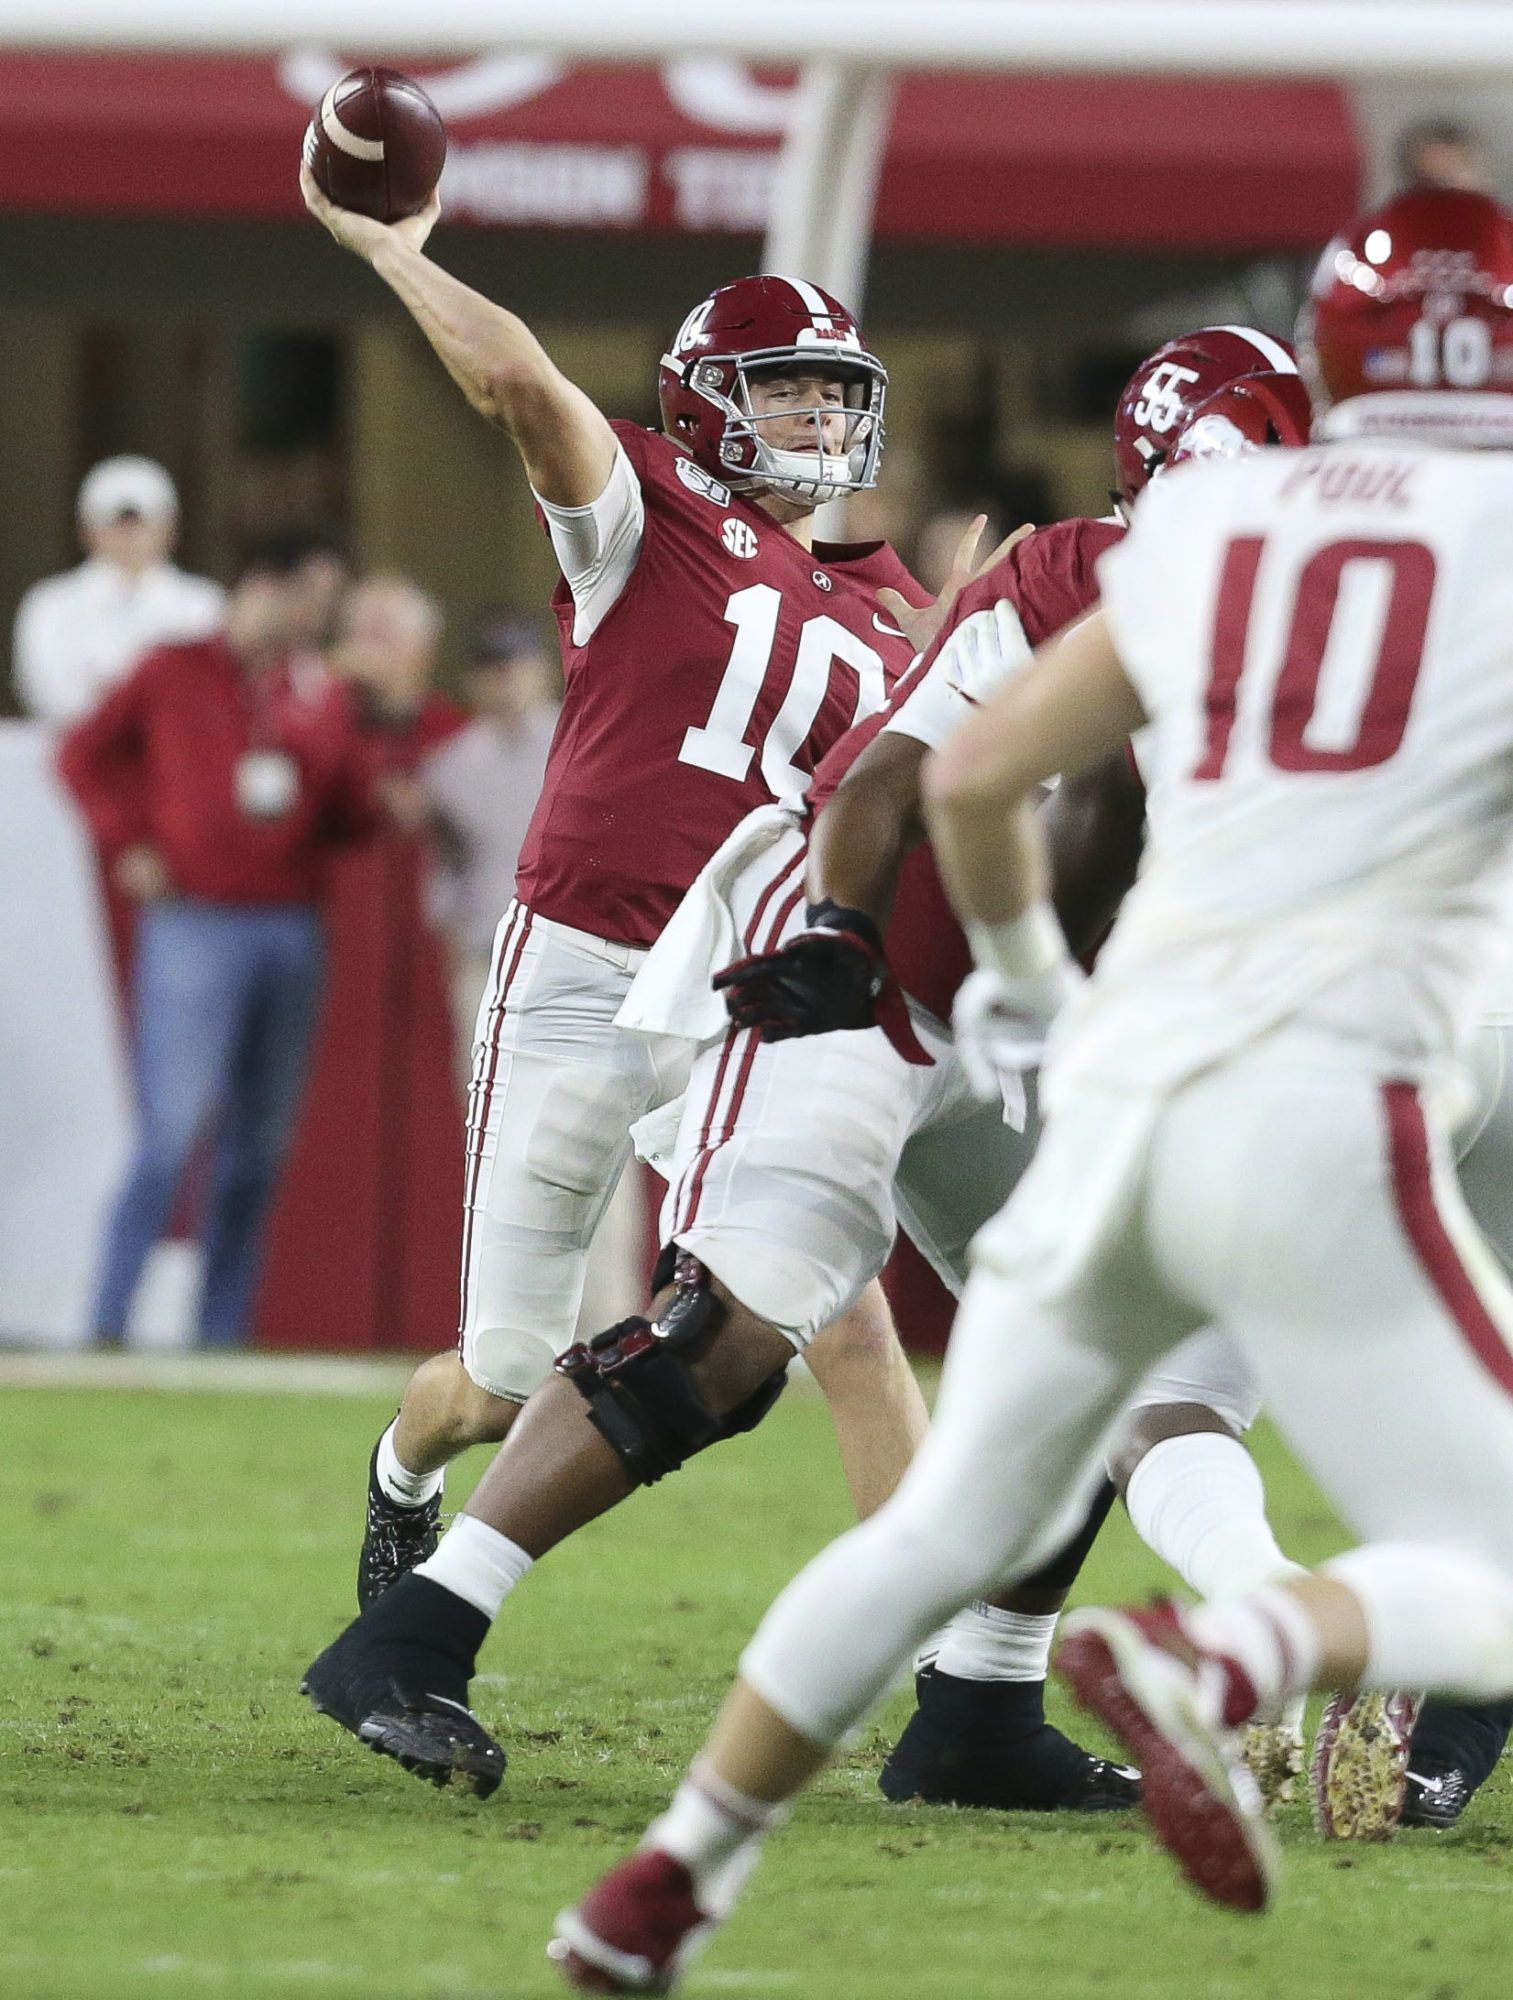 Mac Jones Has Solid Start For Tide Against Arkansas In 2020 Crimson Tide Football Alabama Crimson Tide Football Alabama Crimson Tide